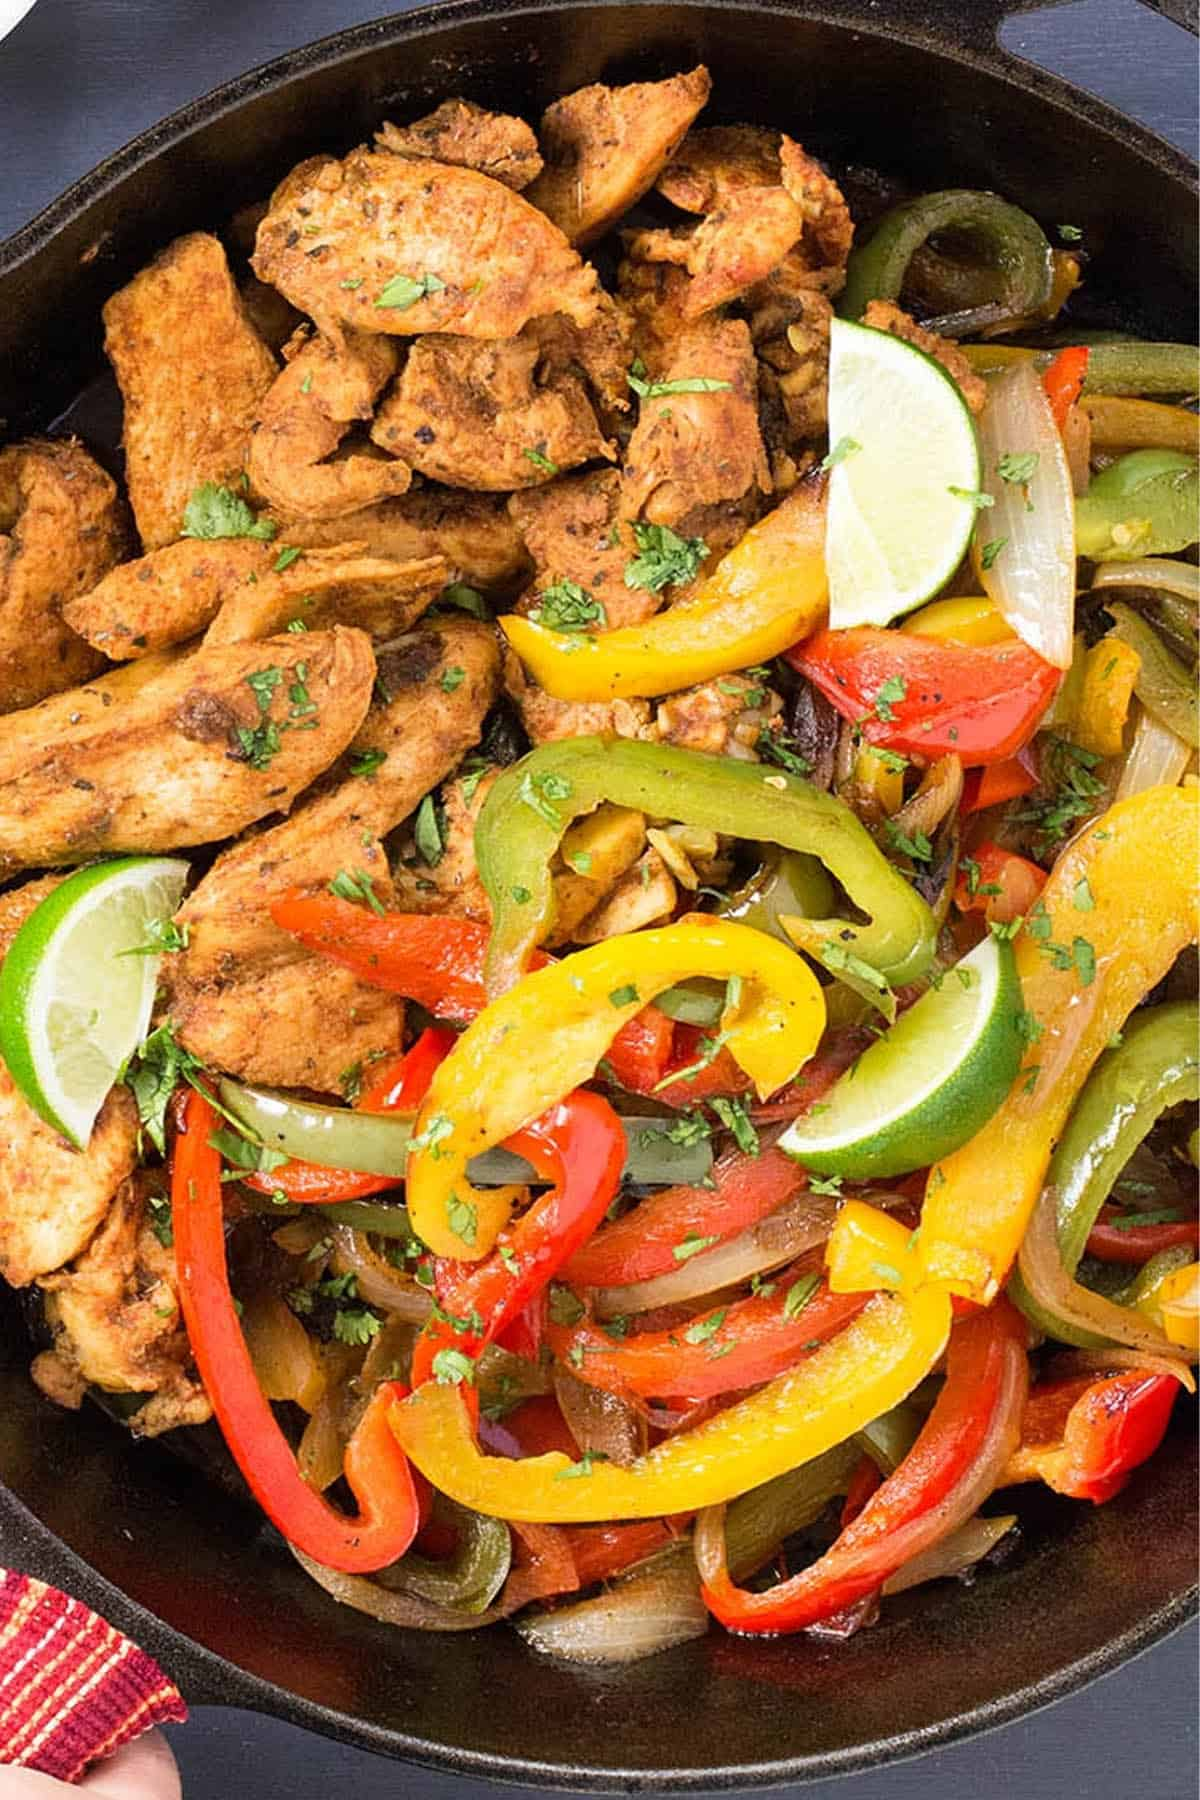 Juicy Braised Chicken Fajitas